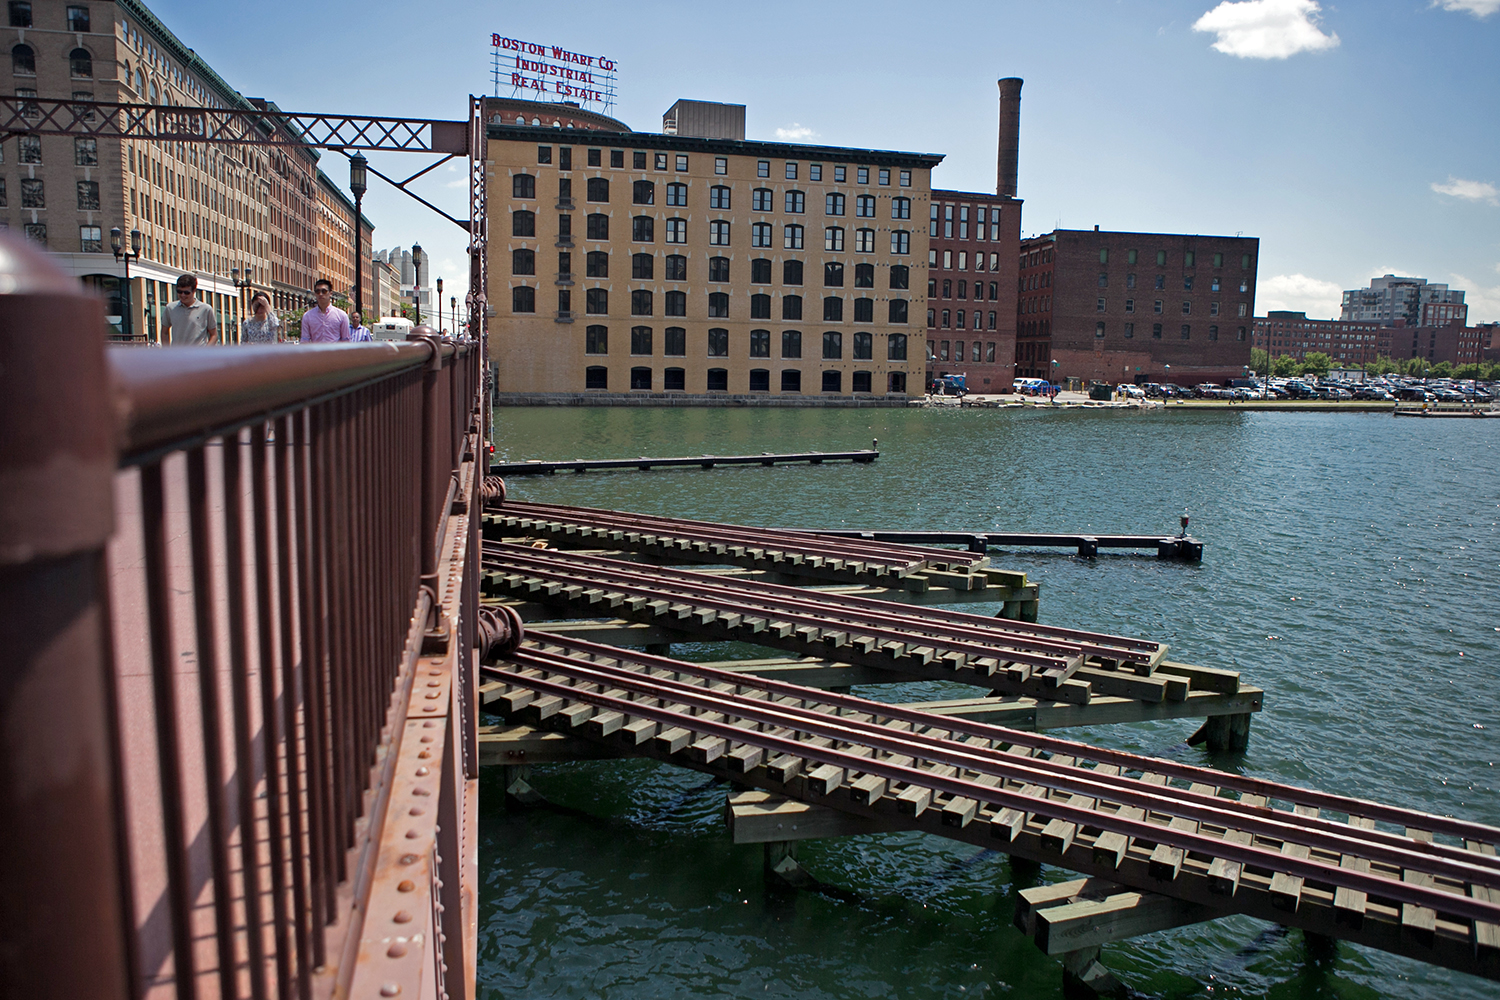 A view across the Fort Point Channel of the proposed General Electric building site, in the Boston's Seaport District, June 6, 2016. (Photo by Lauren Owens Lambert/GroundTruth)